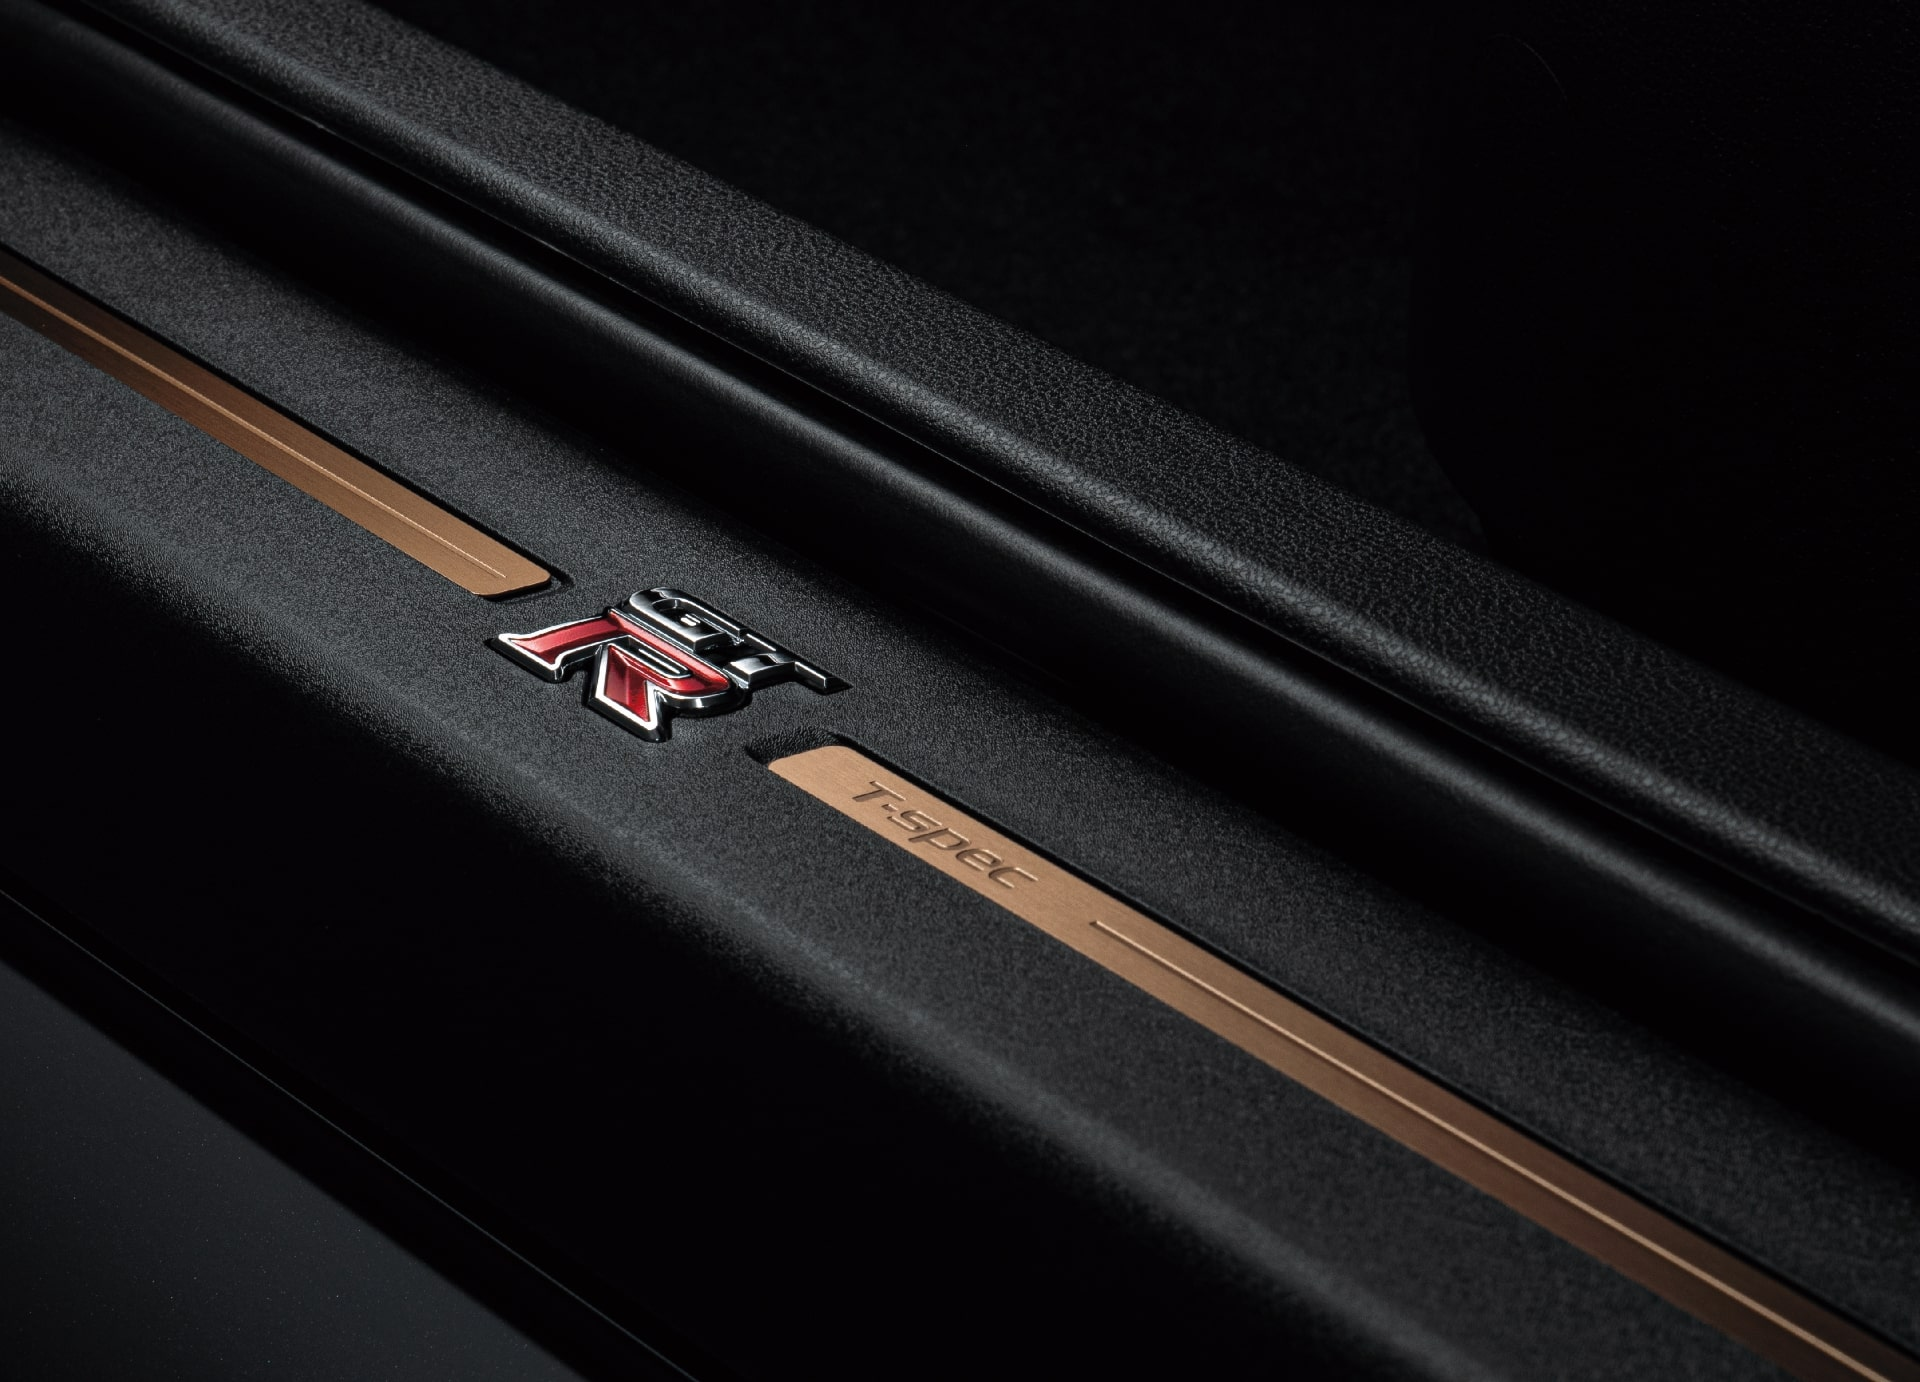 GT-R Track edition engineered by NISMO T-spec 特別装備 キッキングプレート